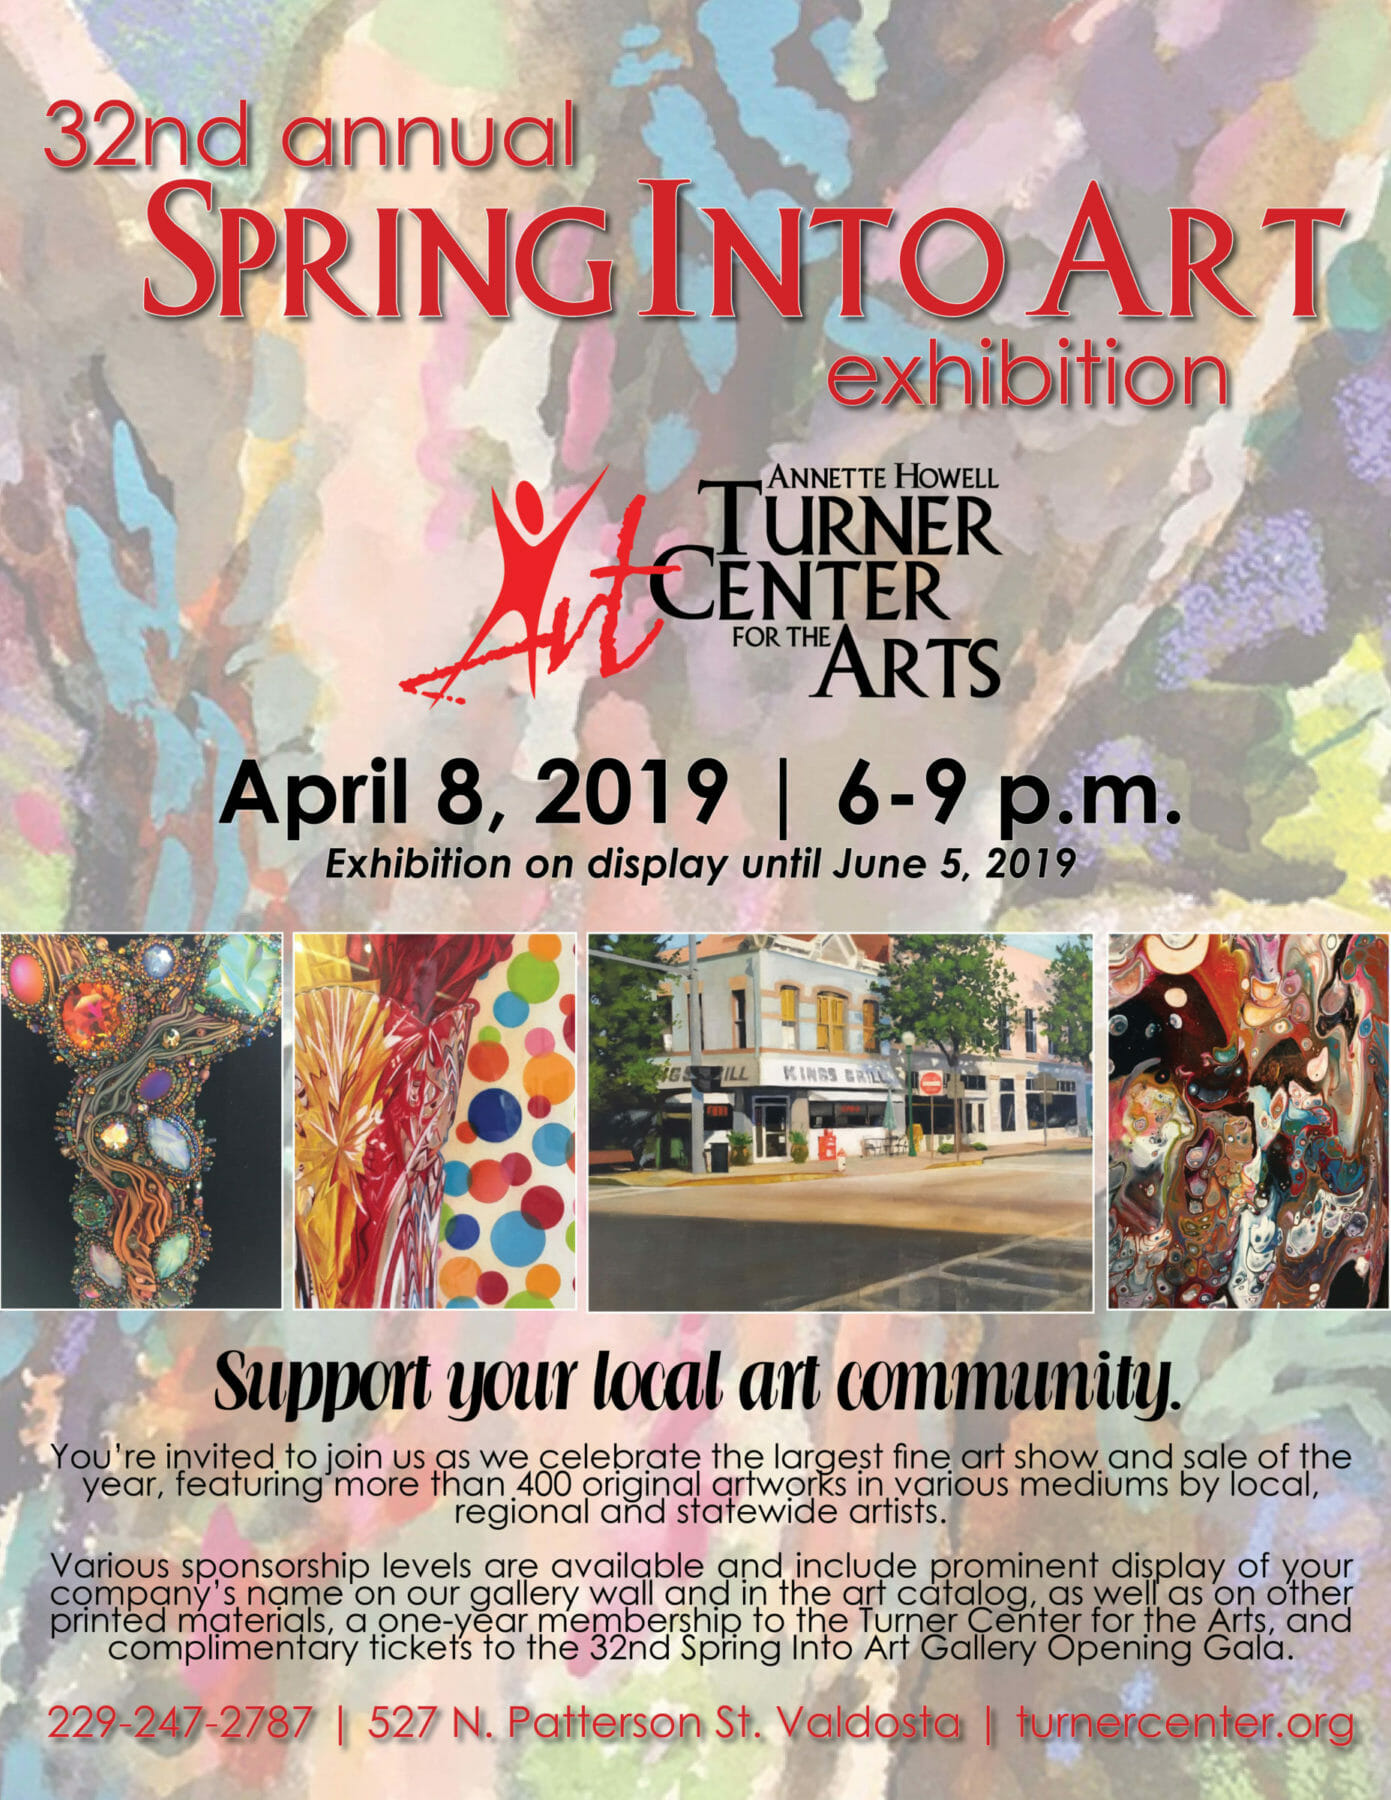 Turner Center invites supporters to participate in 32nd Annual Spring Into Art exhibition